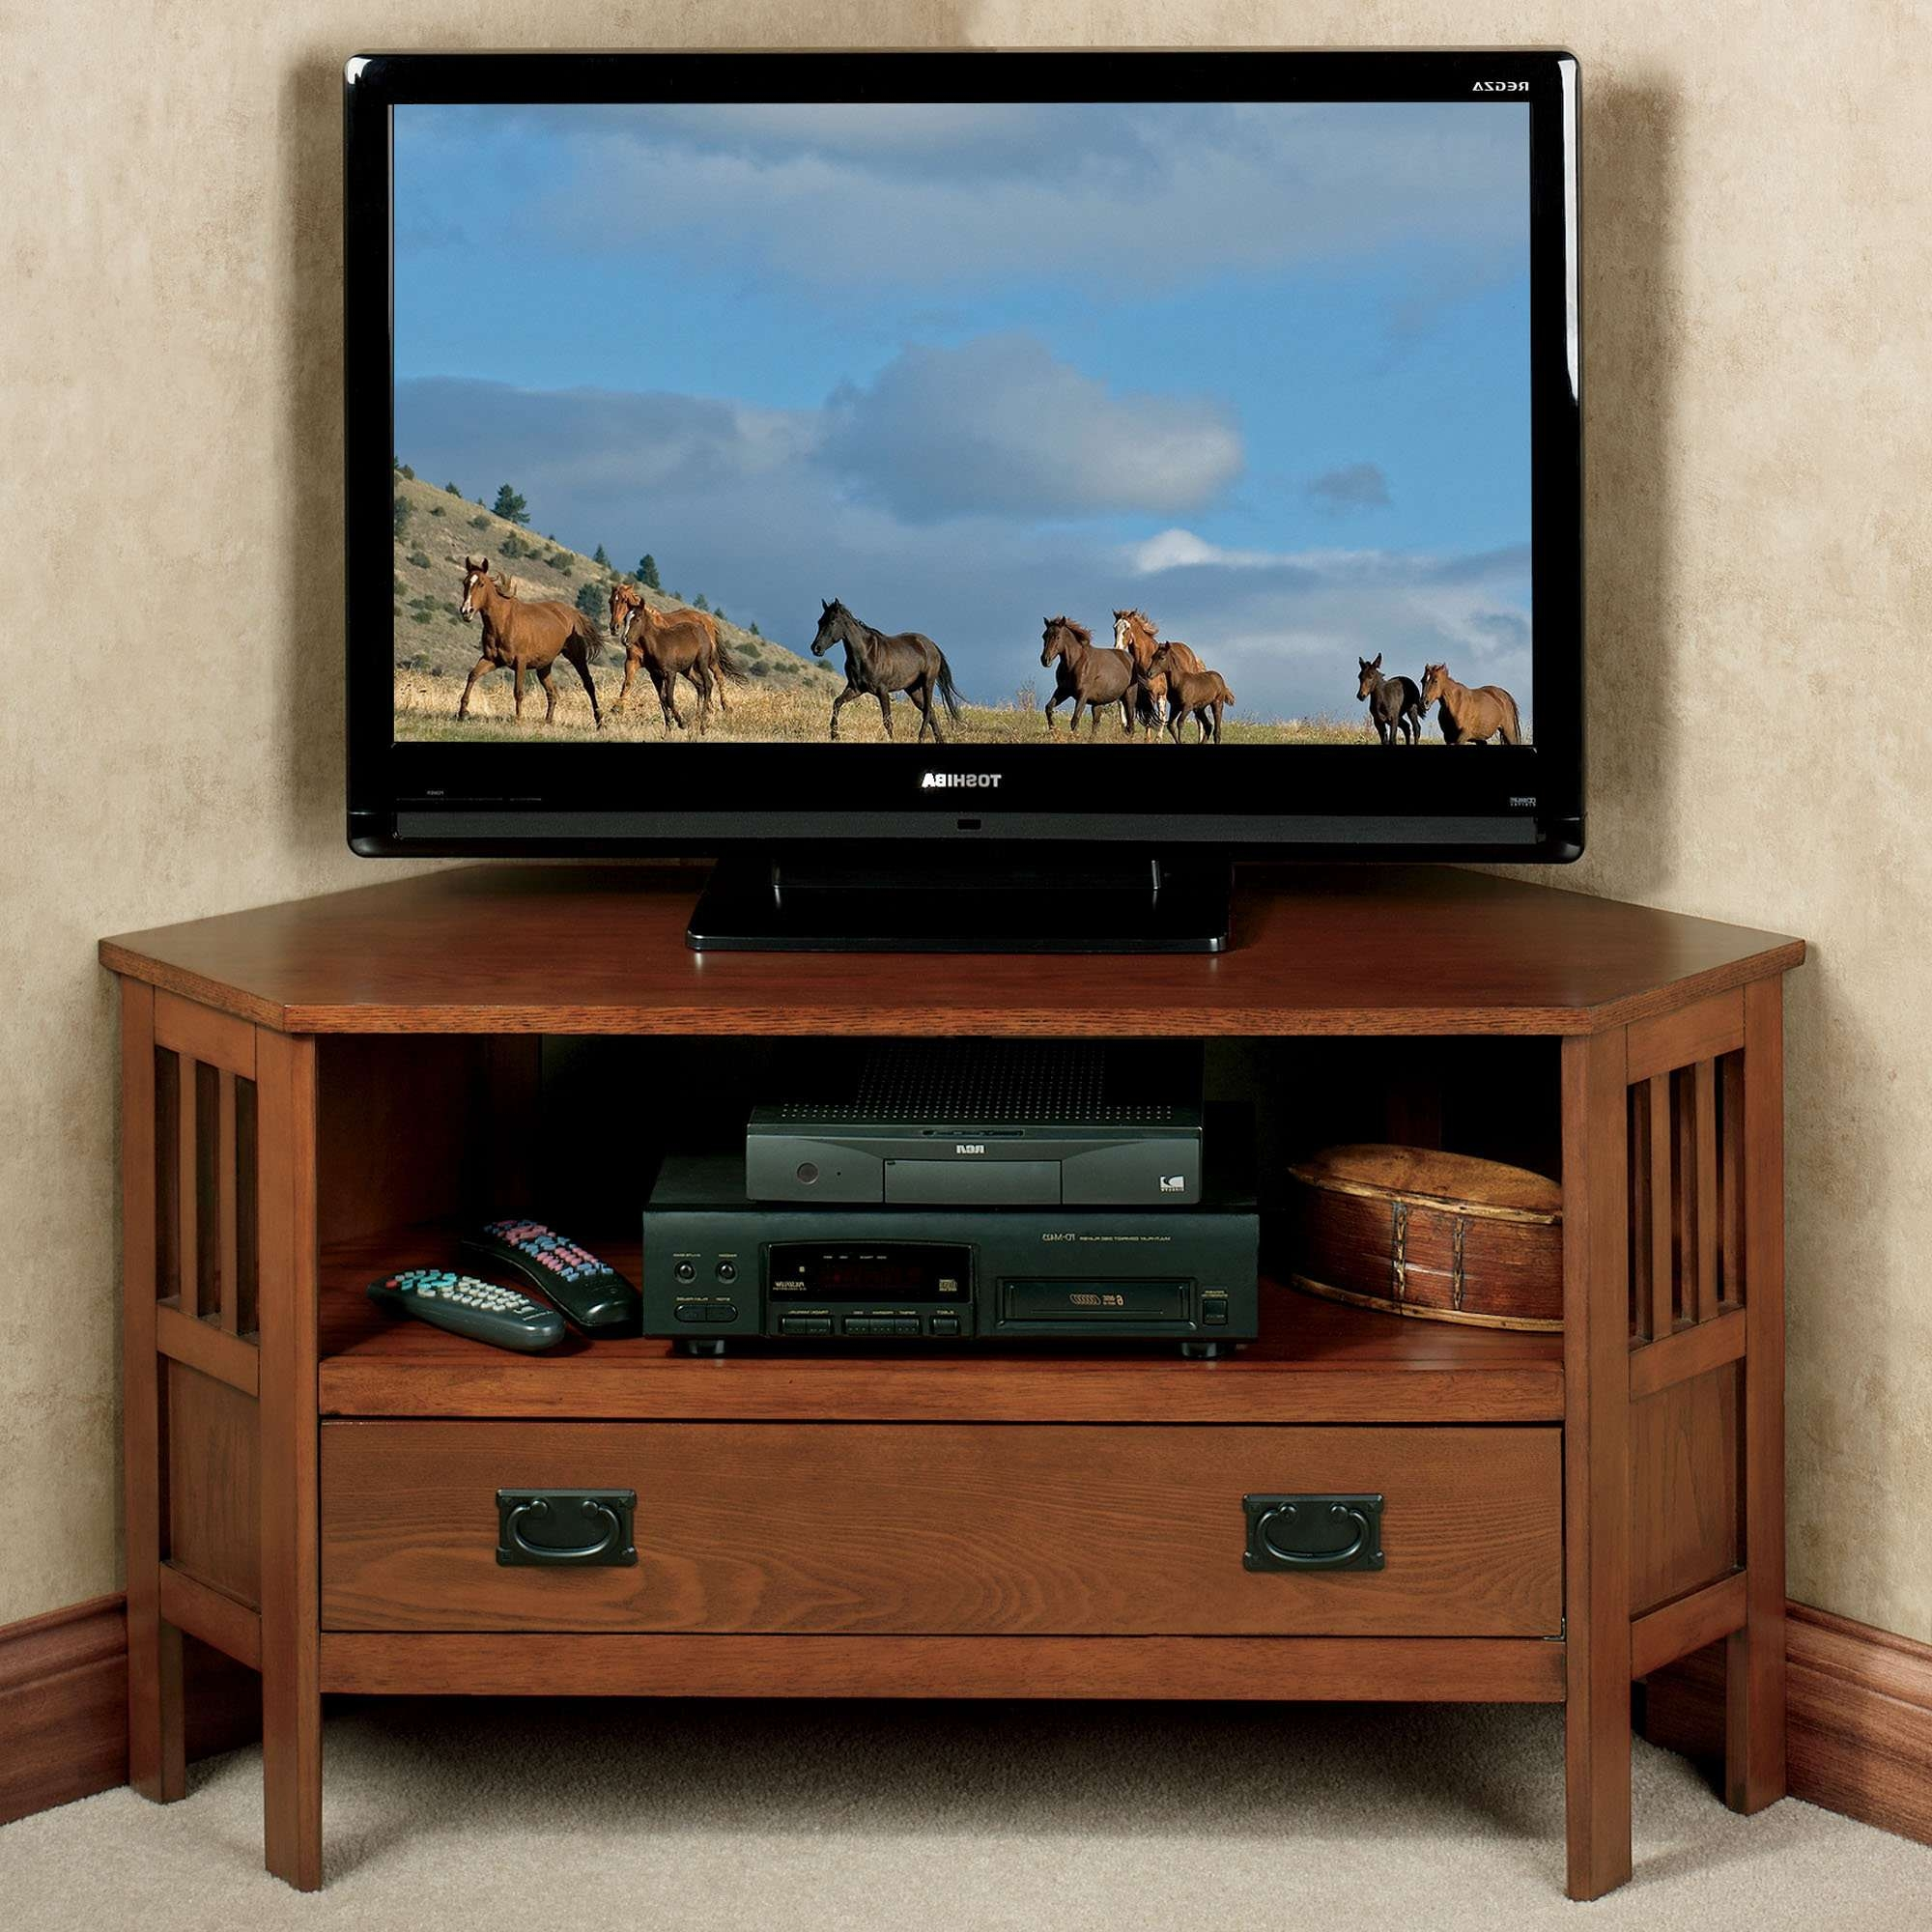 Fresh Corner Tv Stand For 55 Inch Flat Screen 78 With Additional Pertaining To Corner Tv Stands For 55 Inch Tv (View 3 of 15)